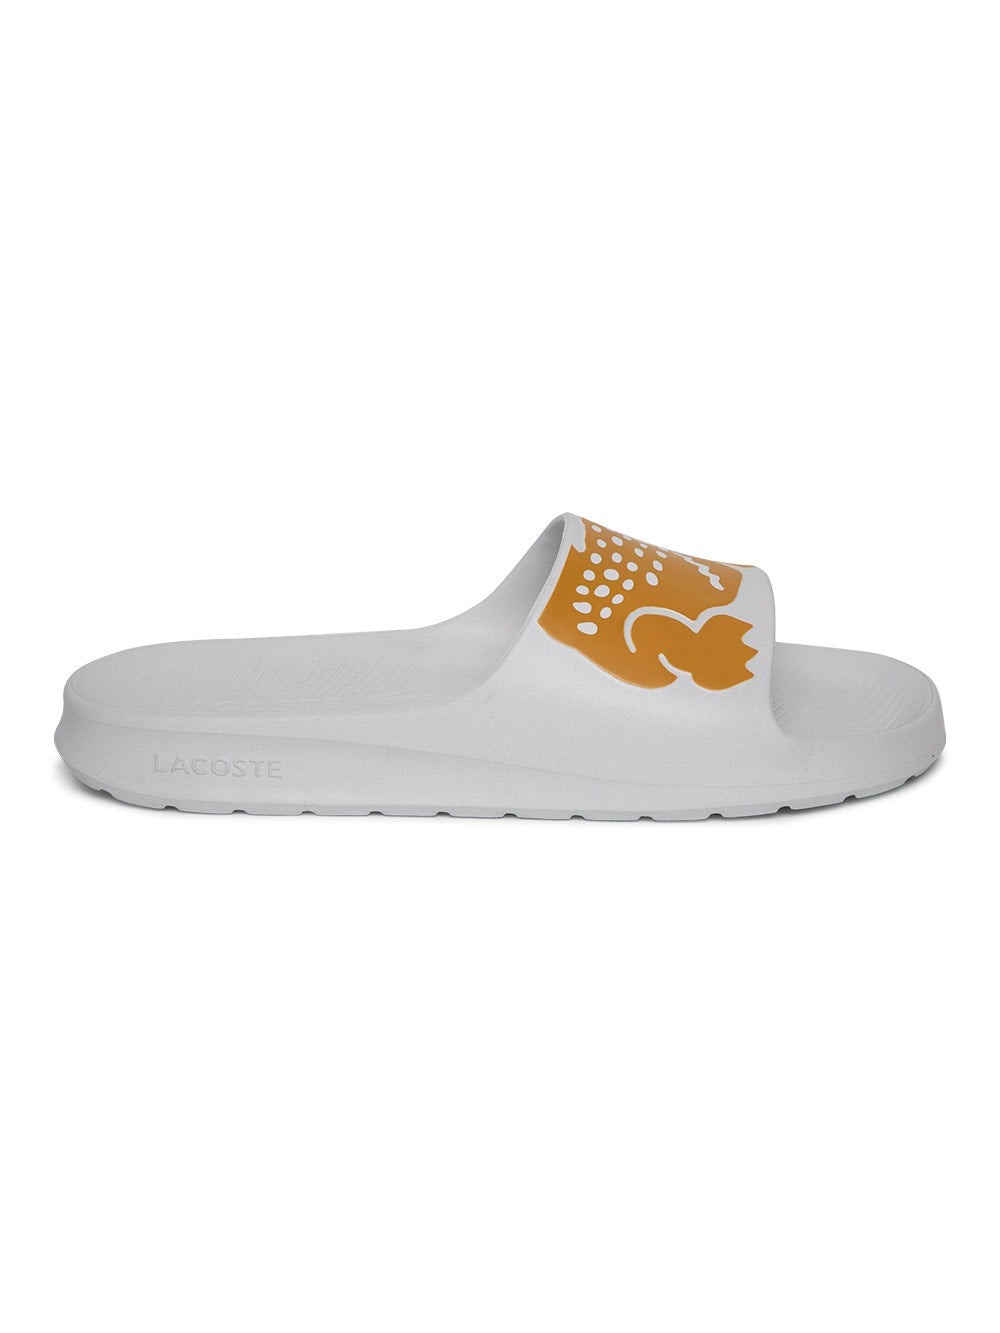 White and Yellow X Ricky Regal Croco Slides 2.0 Vegas